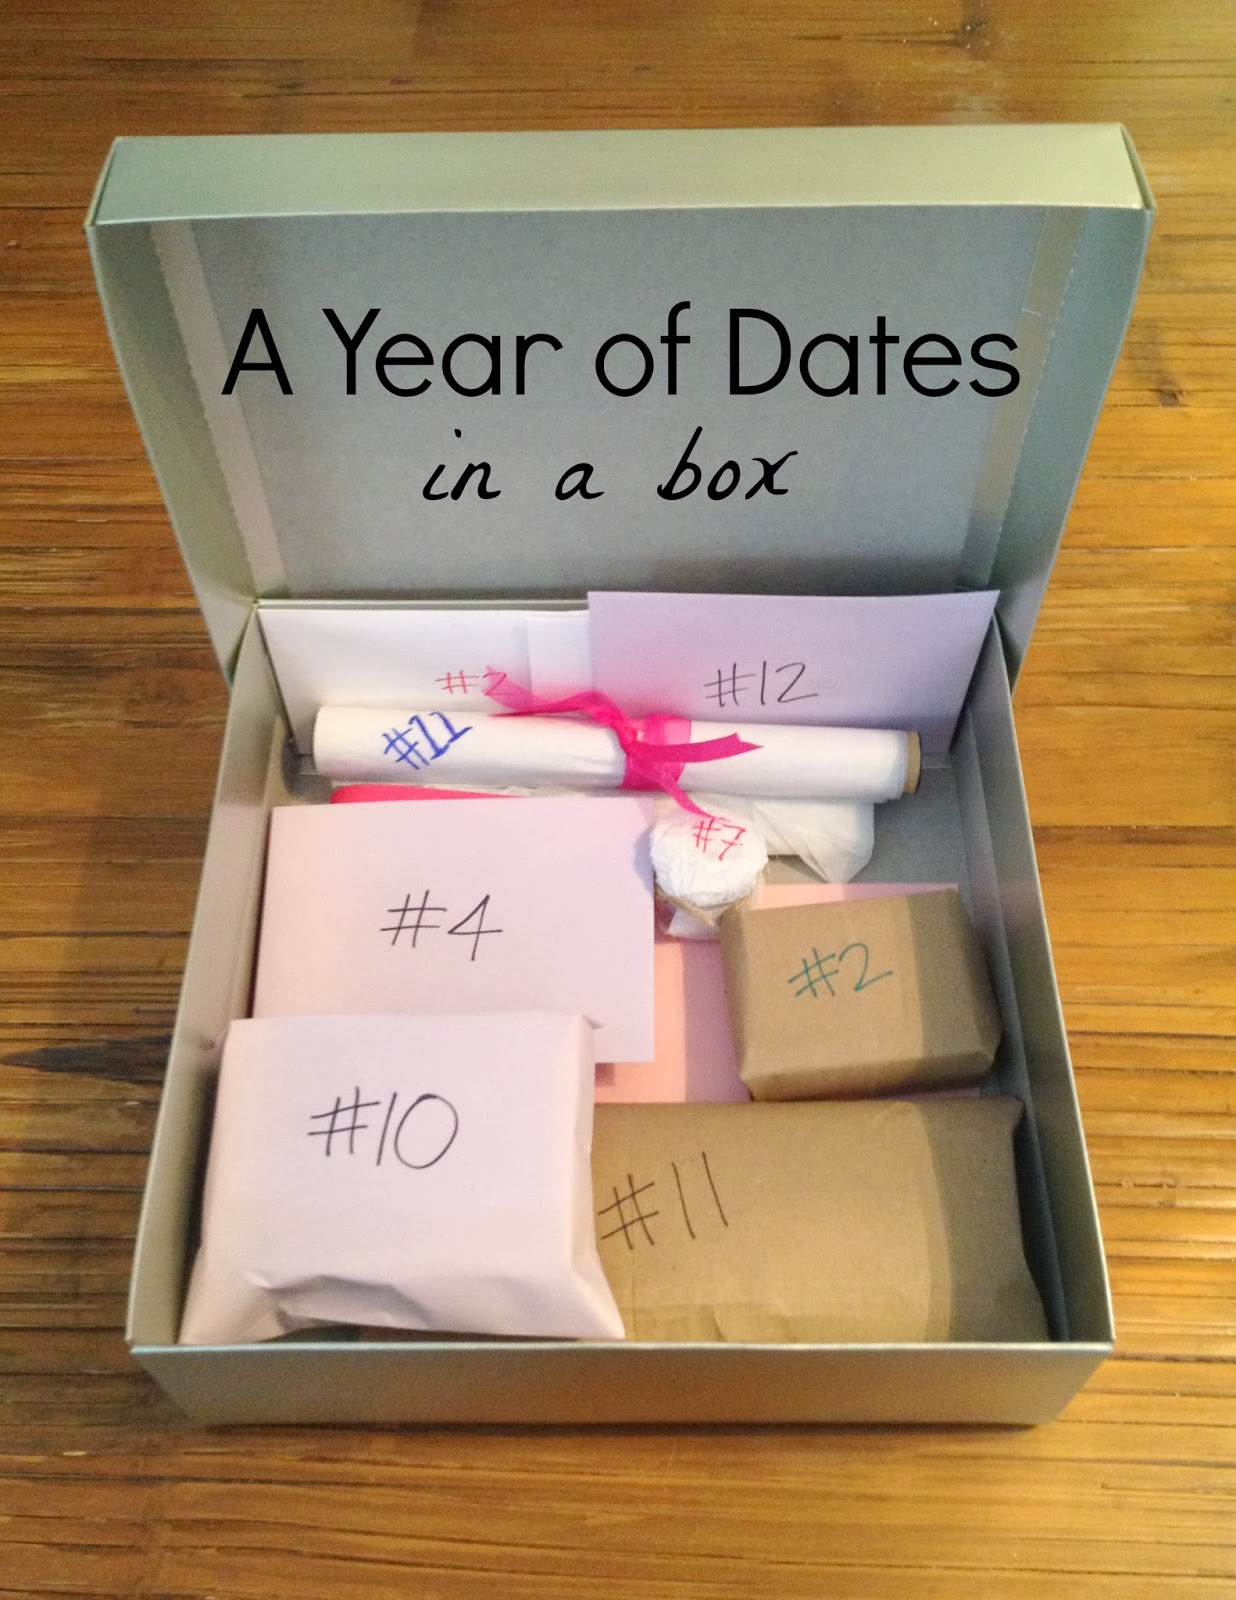 One year dating gift for him